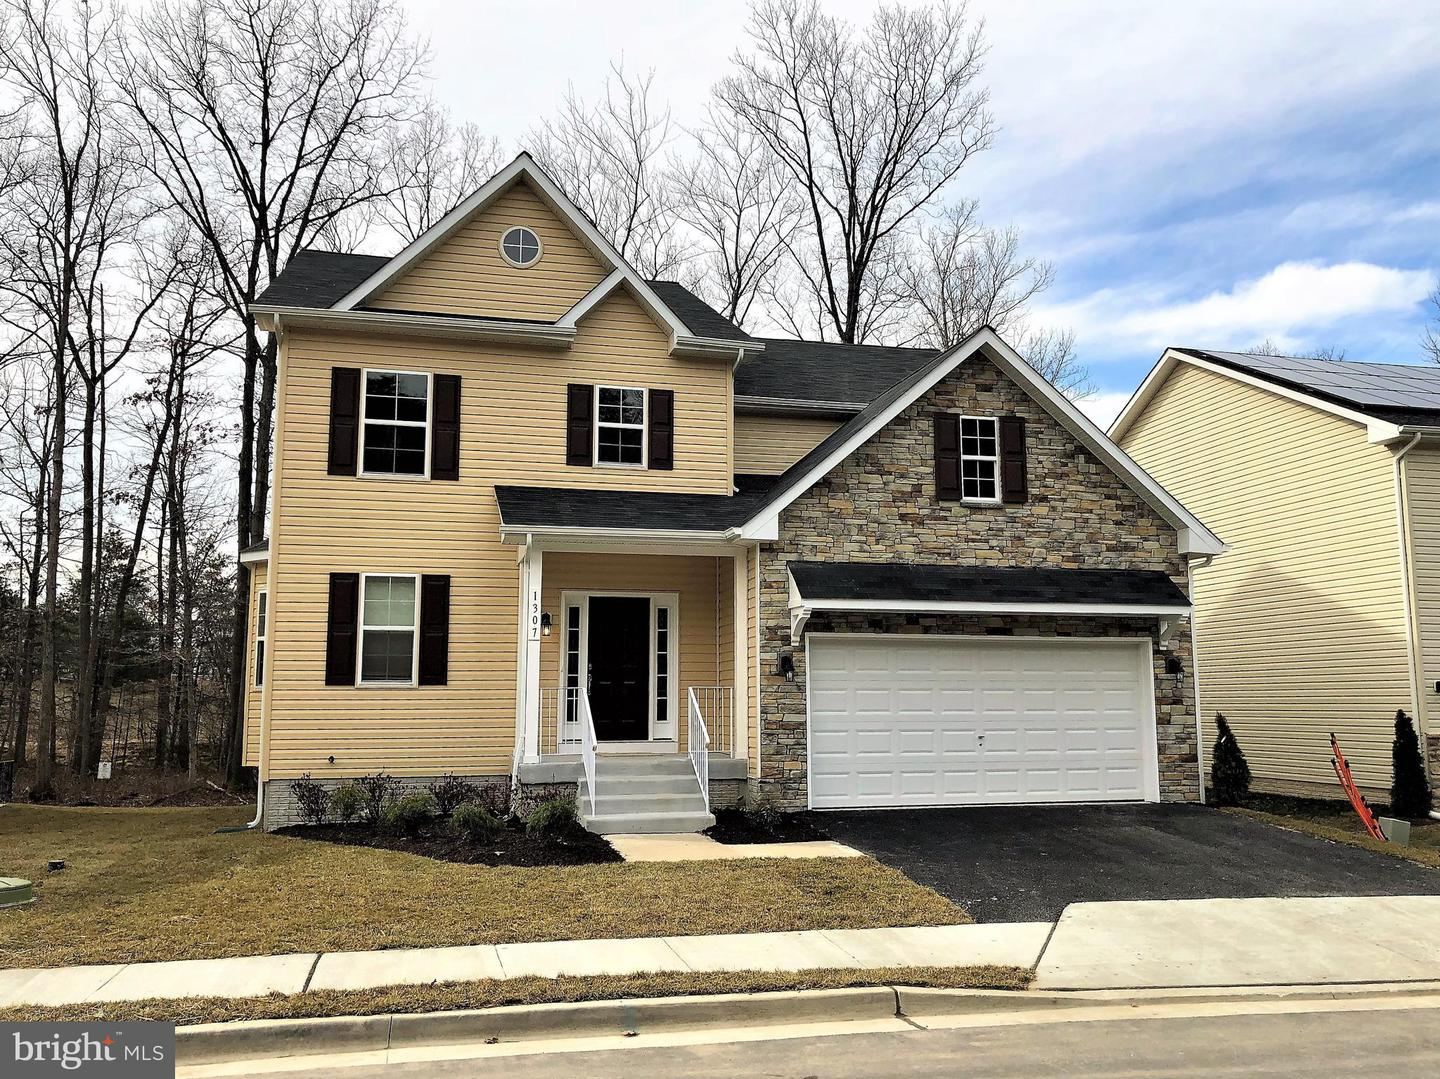 1307 PATUXENT WOODS DRIVE, ODENTON, Maryland